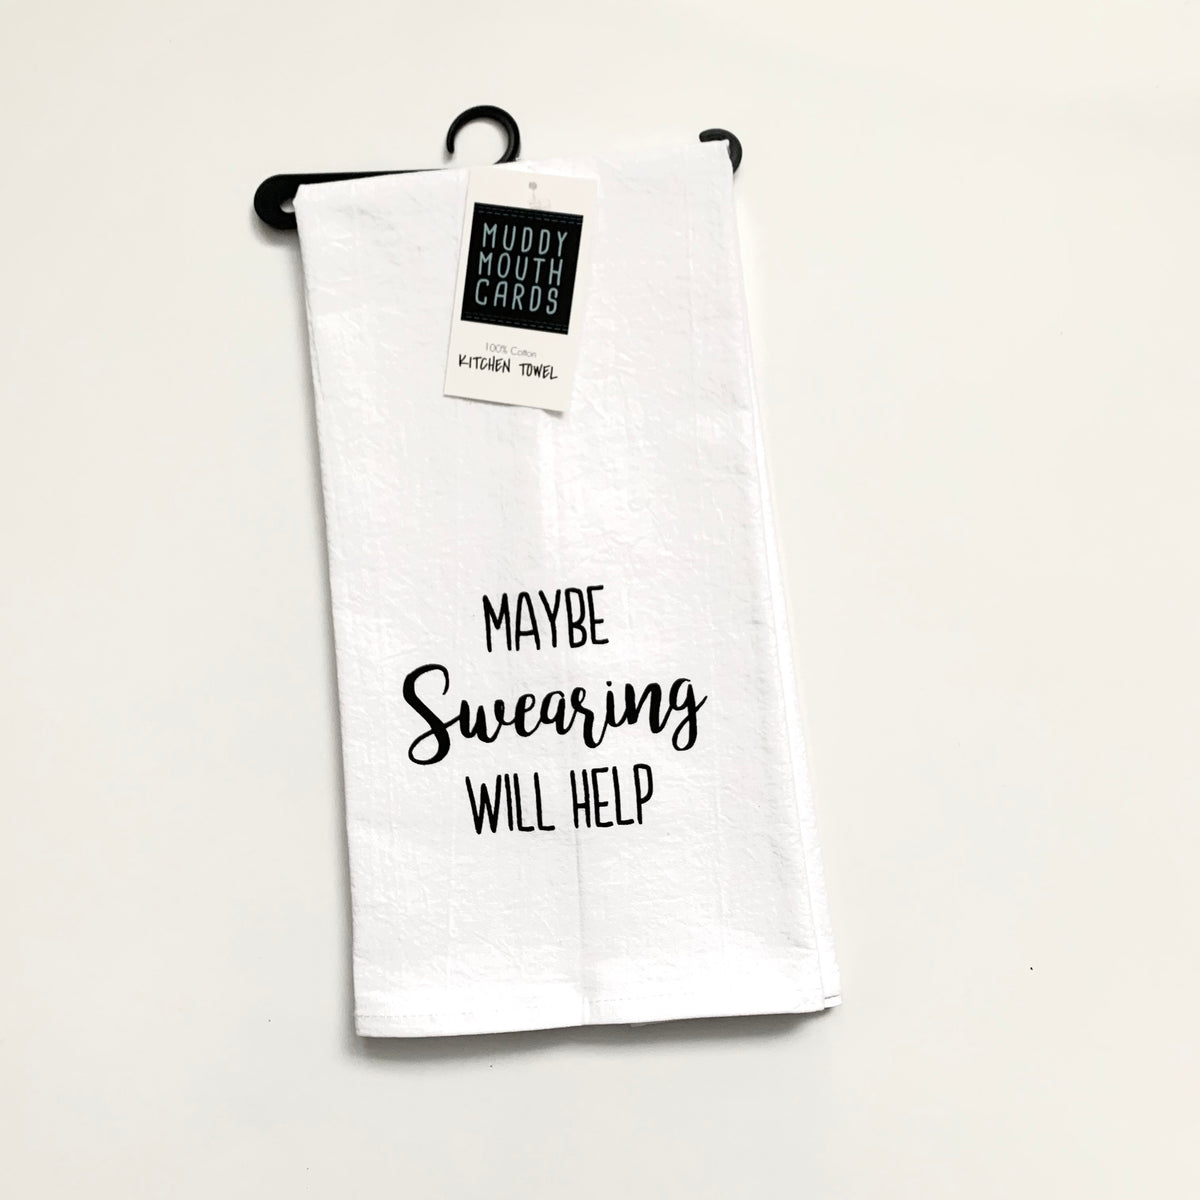 Muddy Mouth Cards Towel— Maybe Swearing Will Help